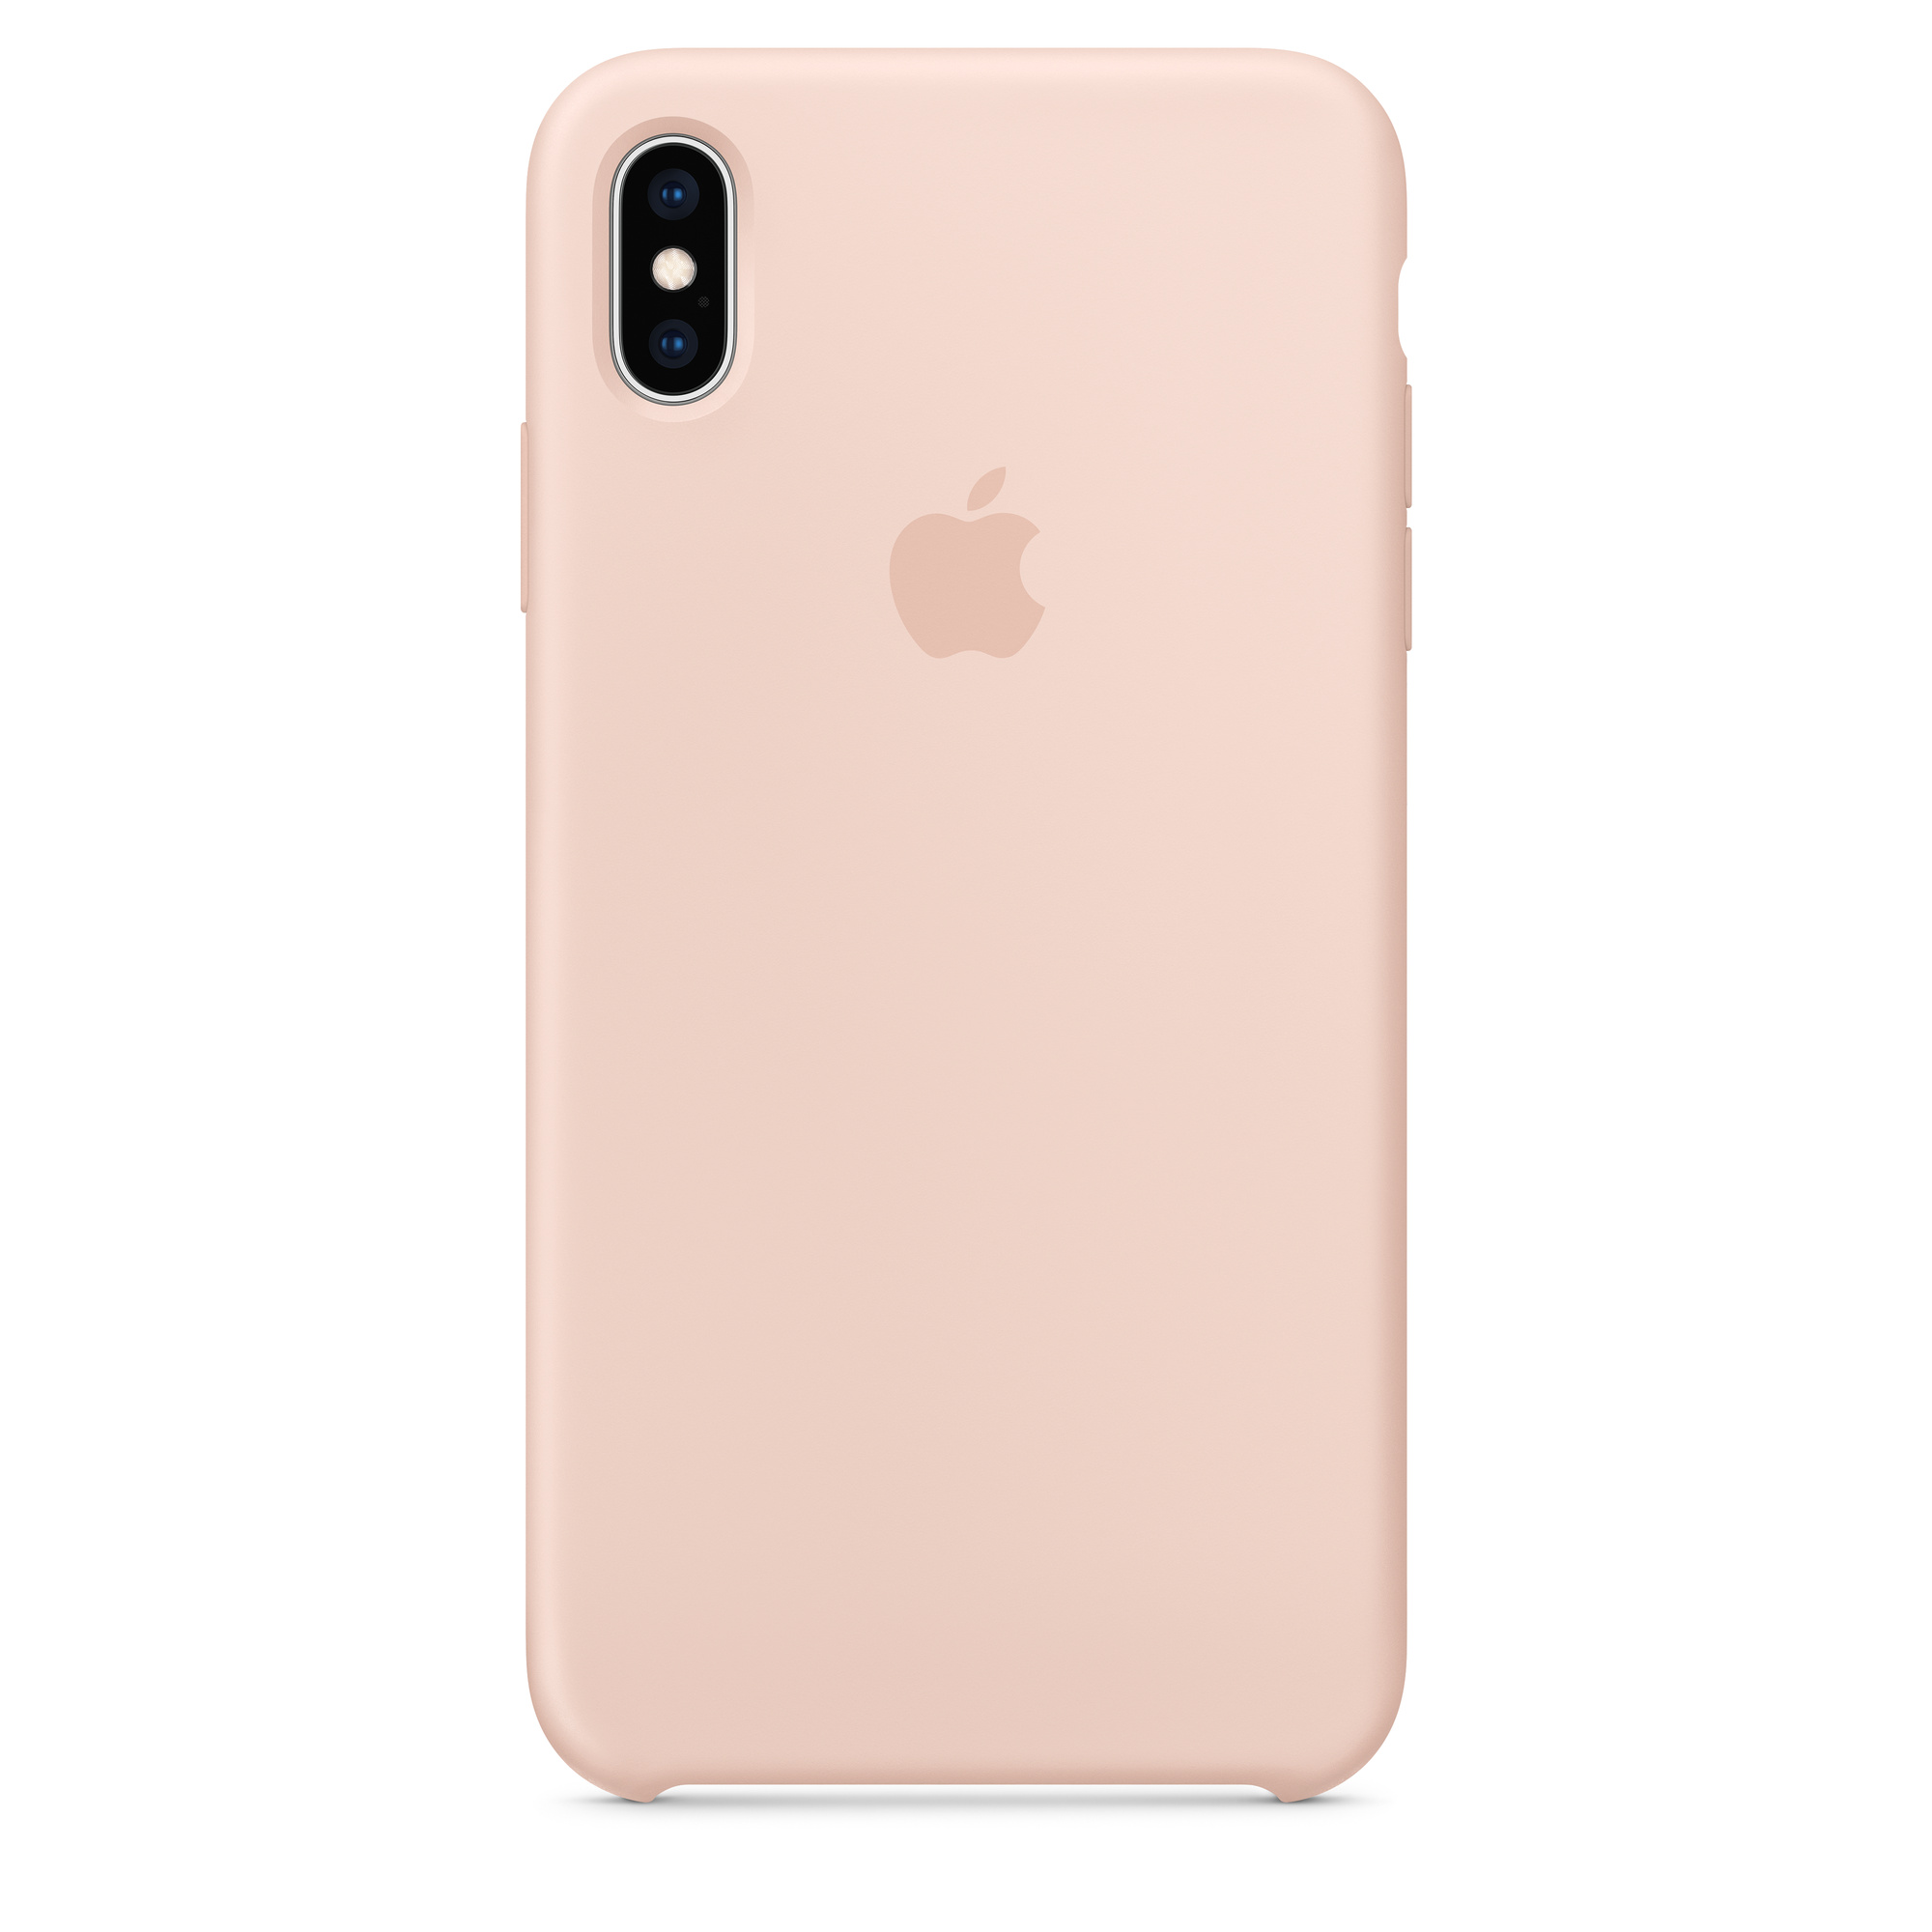 size 40 c3023 fd73c iPhone XS Max Silicone Case - Pink Sand